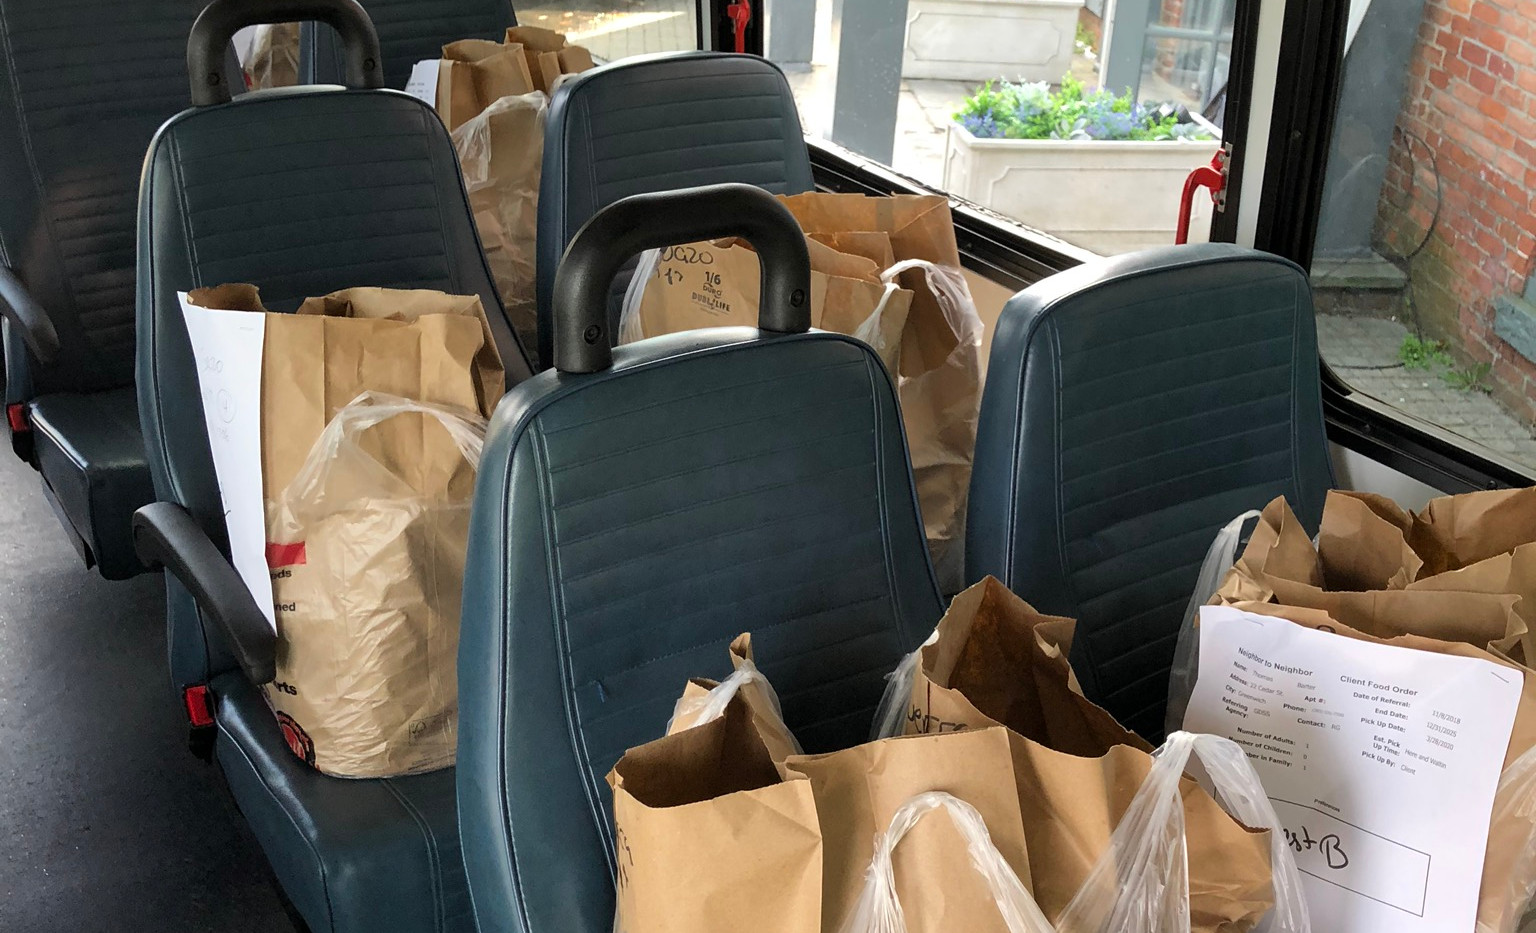 TAG van full of groceries ready for delivery to homebound seniors and disabled residents.